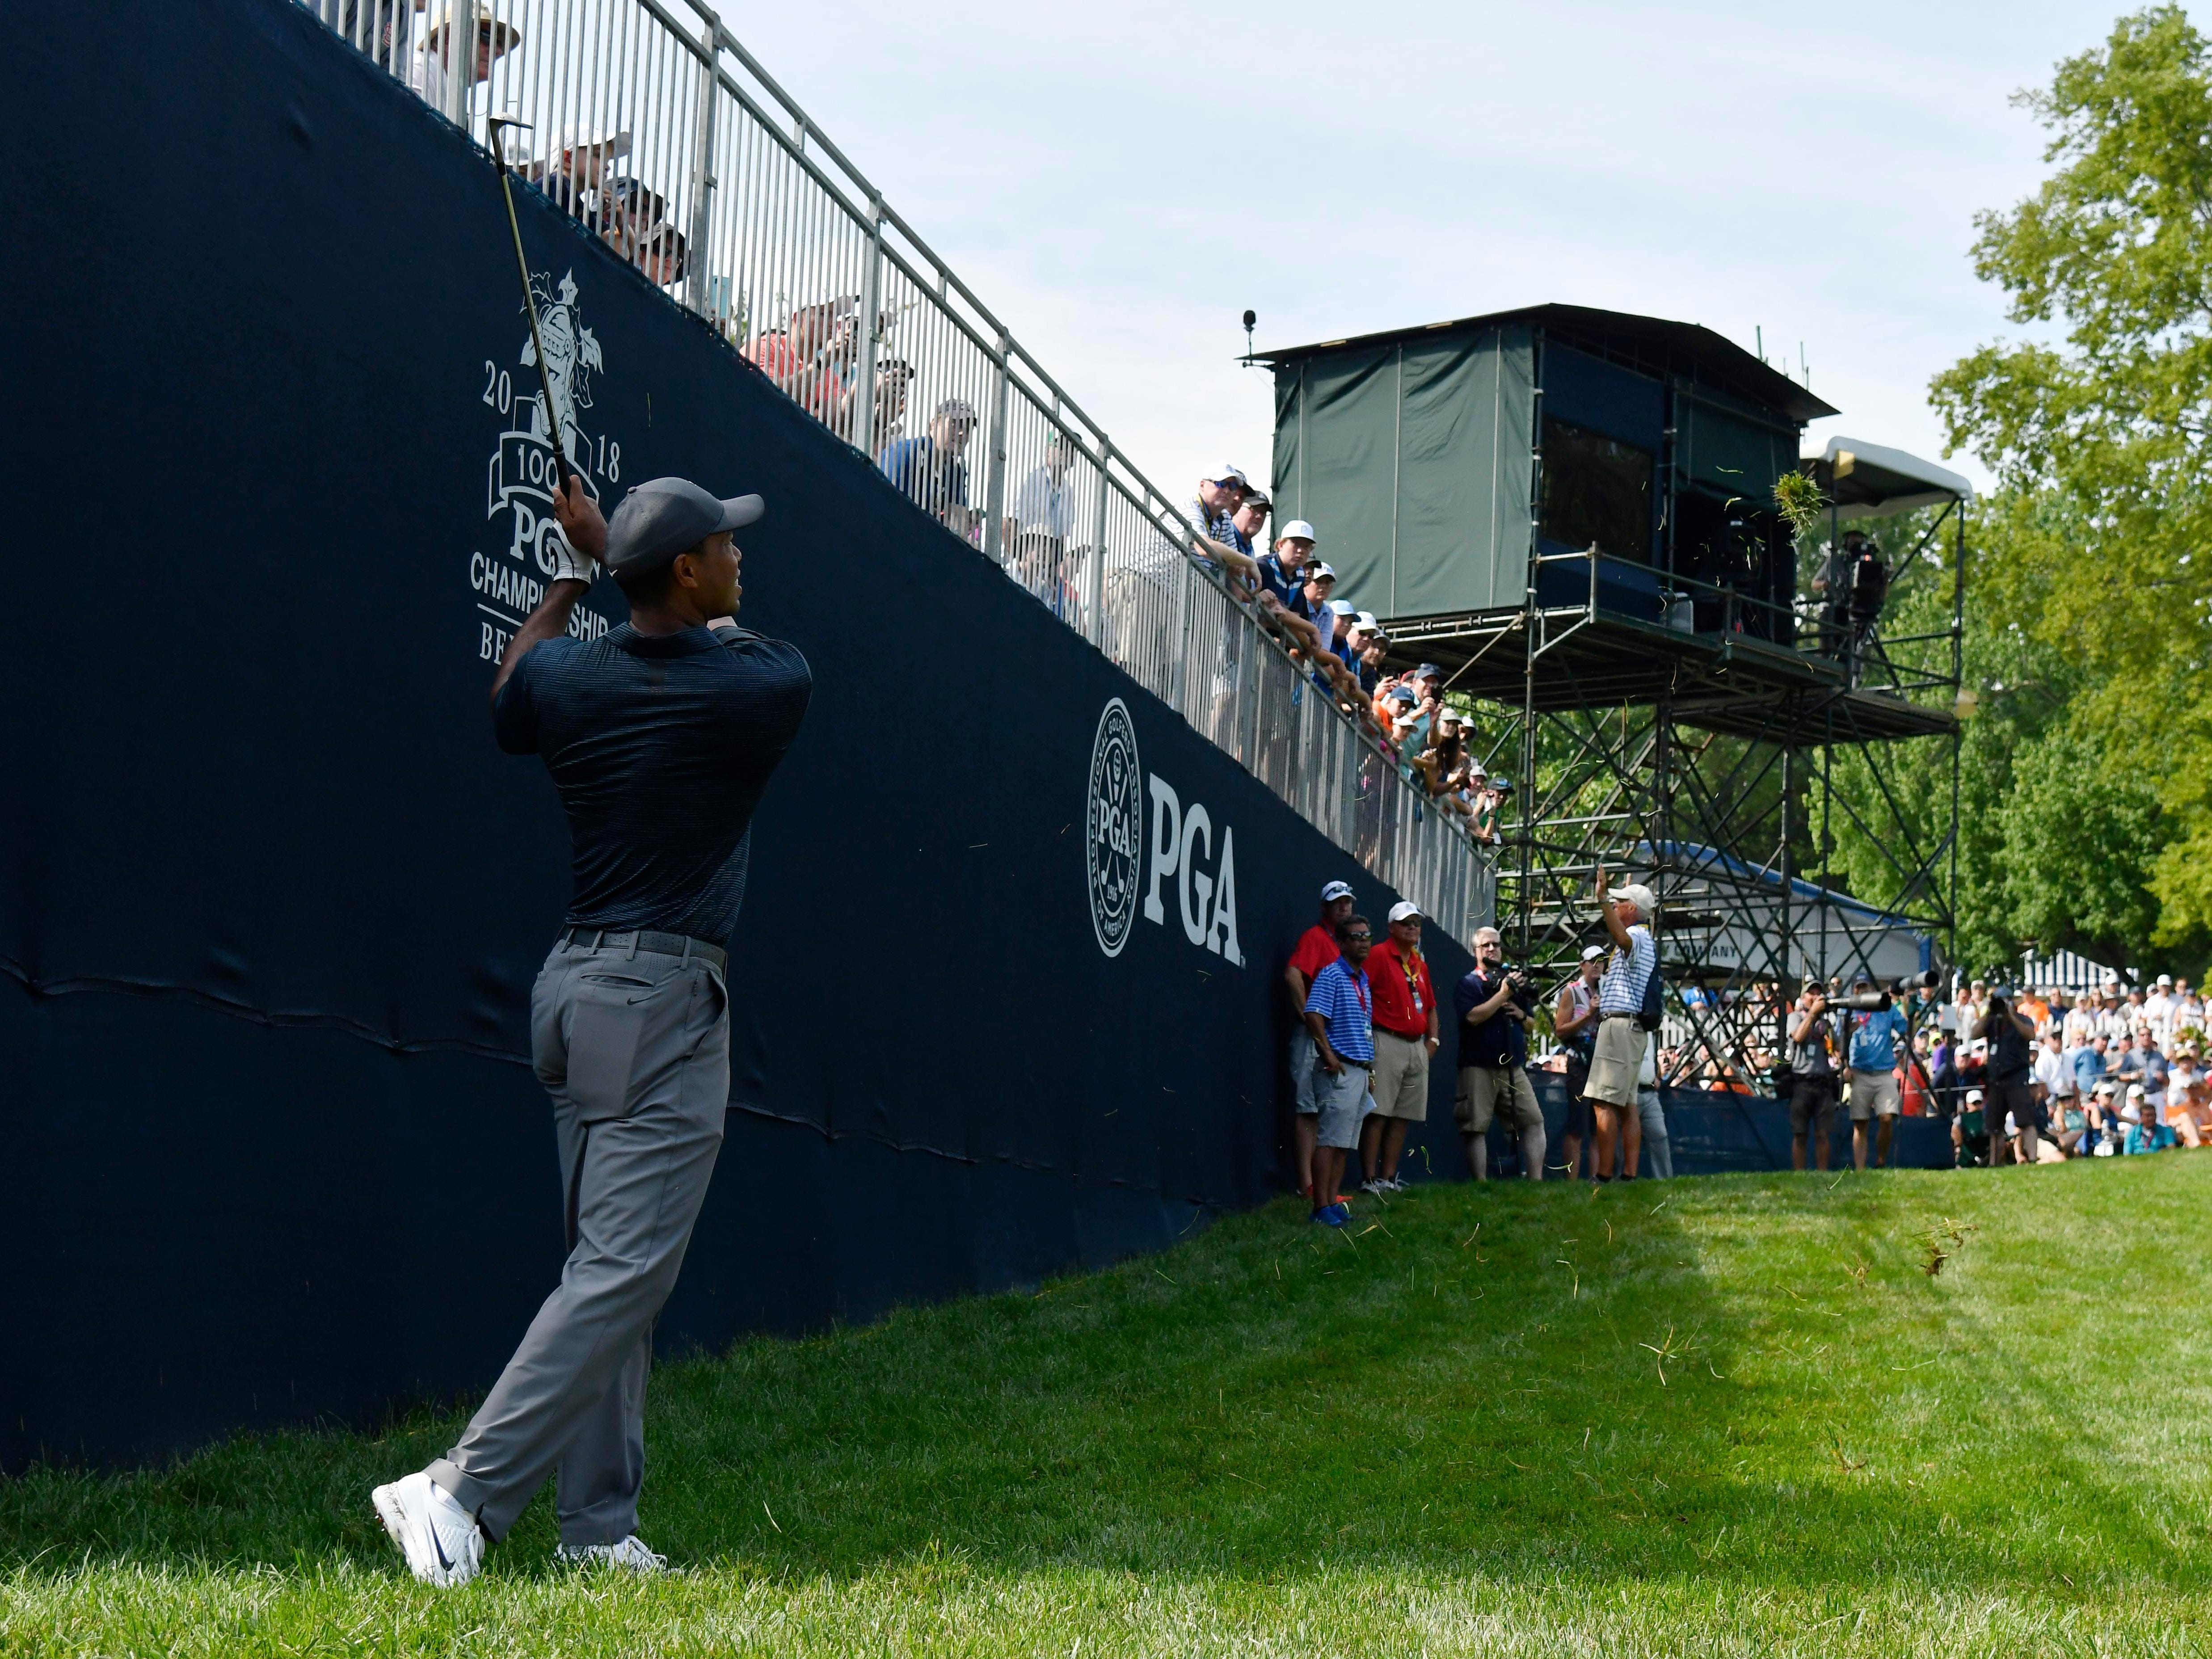 Tiger Woods hits from the rough on the 16th hole.